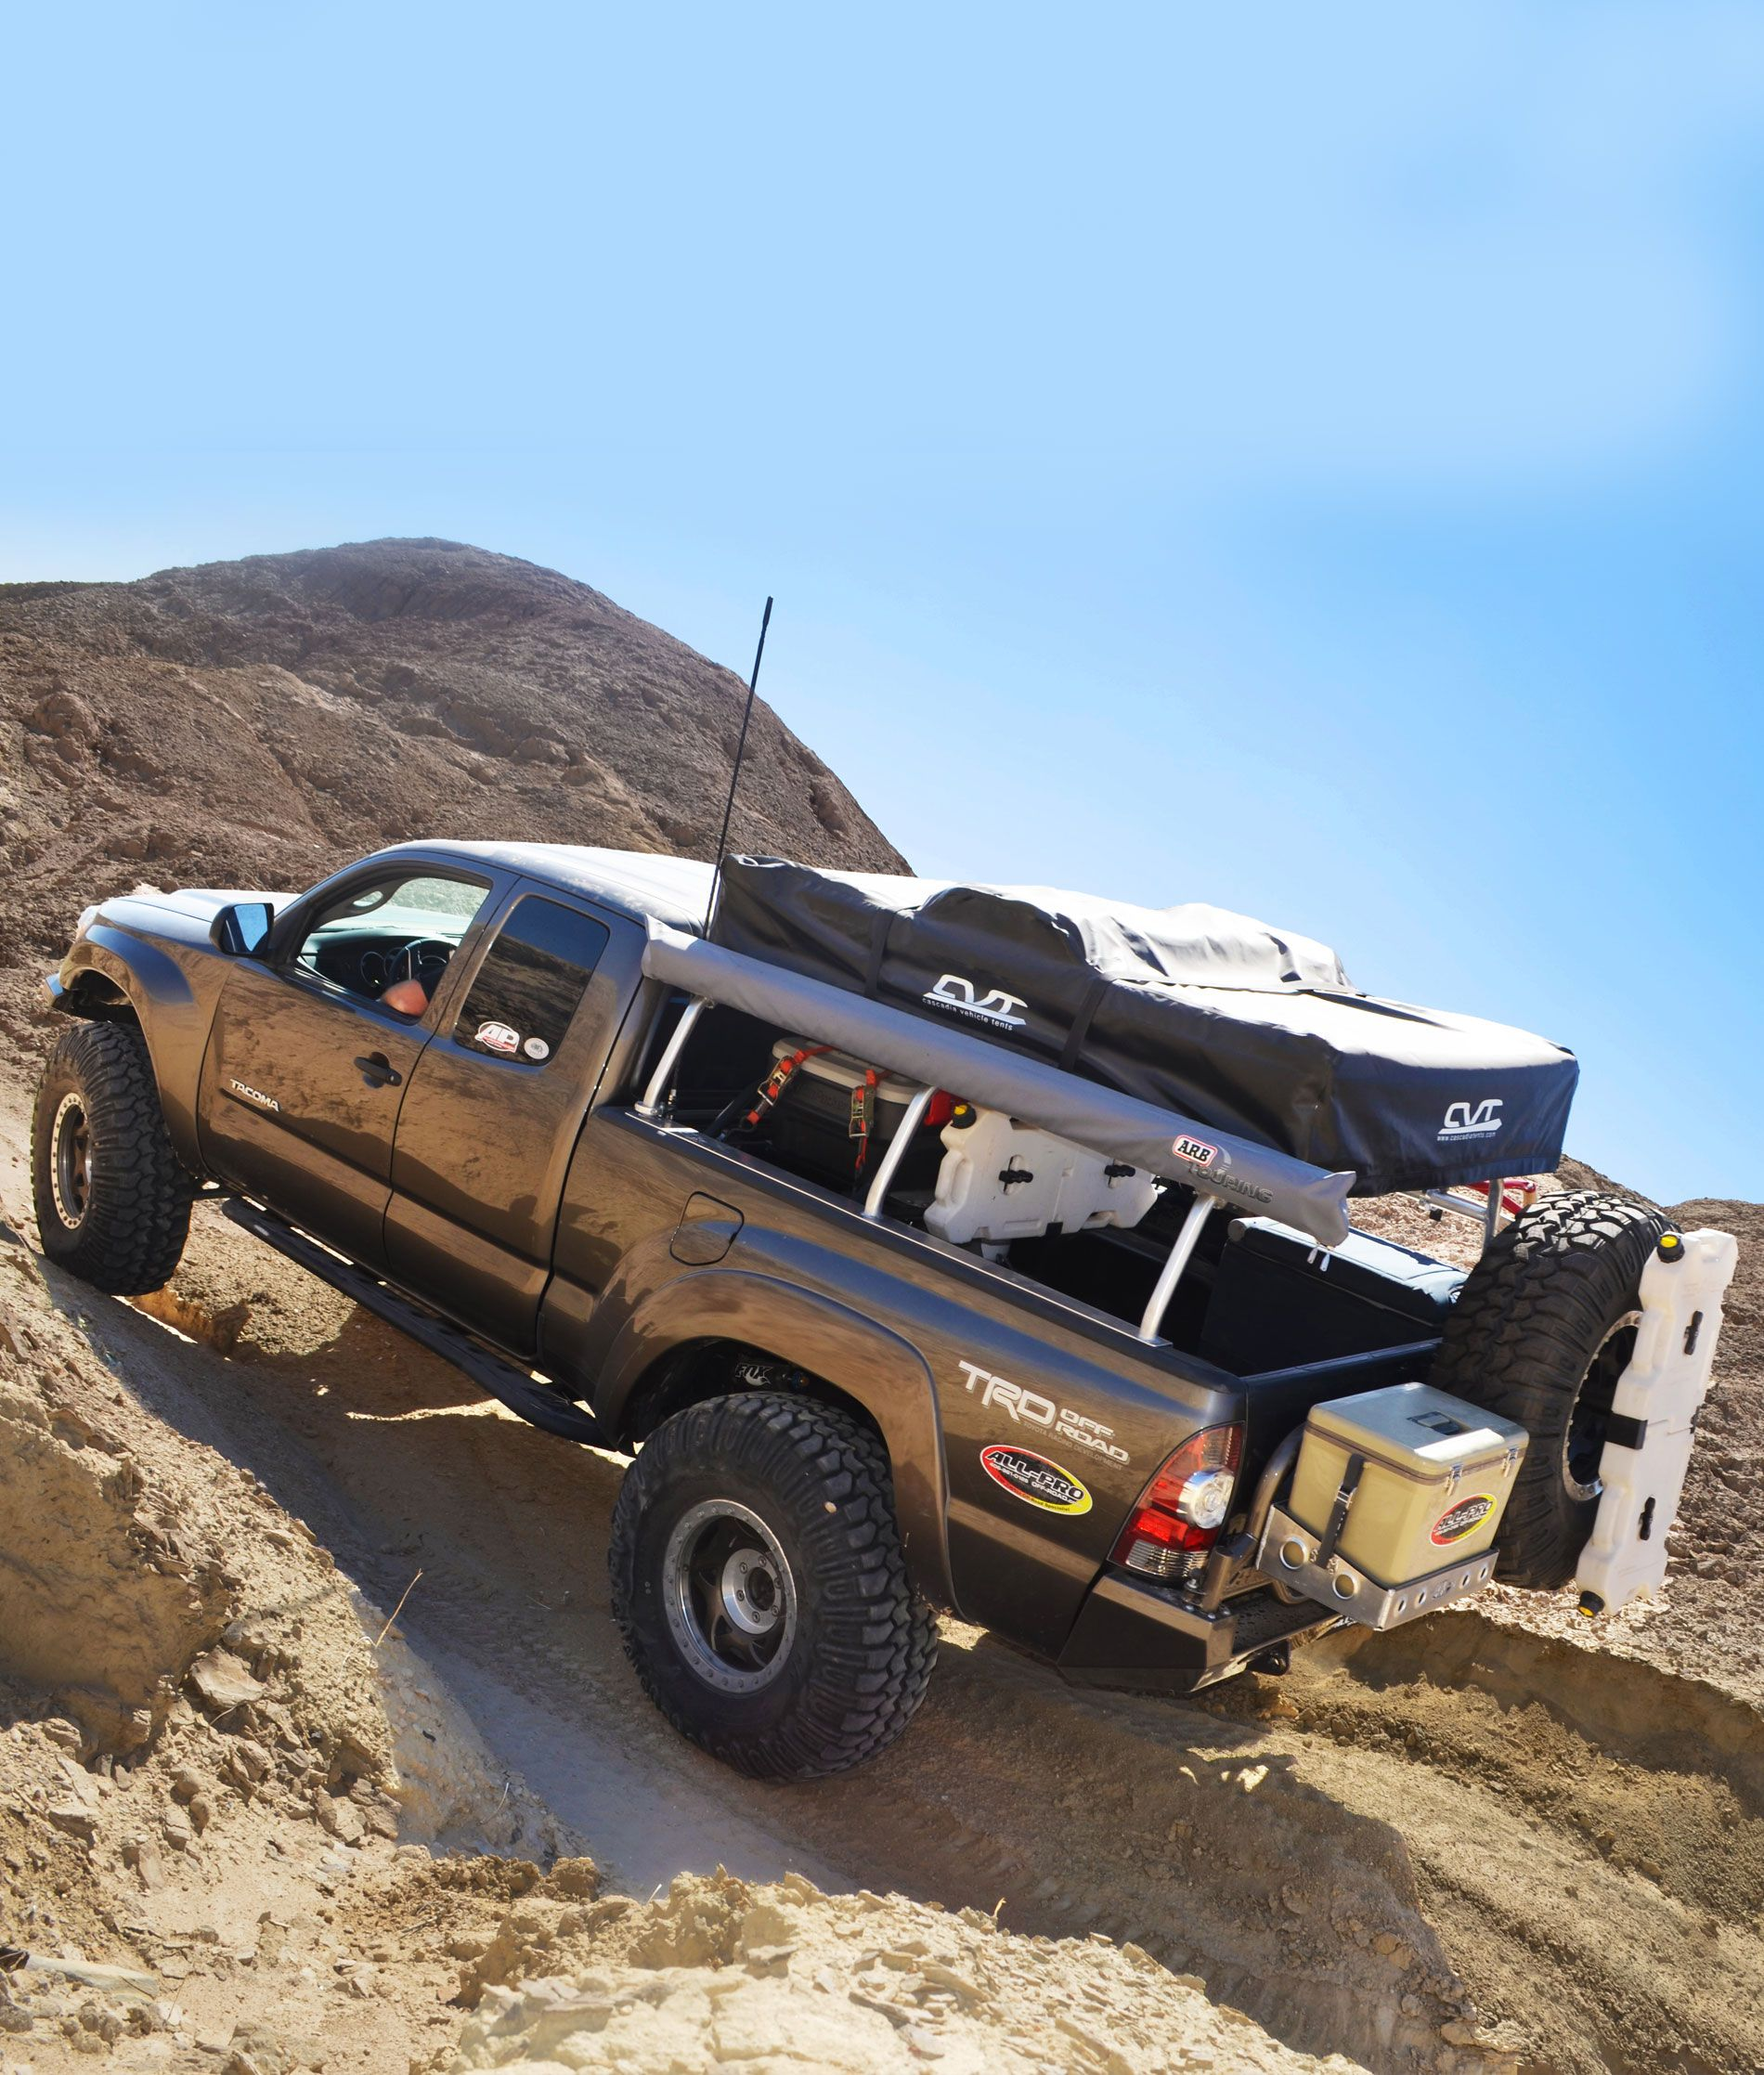 05 15 Tacoma Apex Steel Pack Rack Kit Unwelded Toyota Tacoma Roof Top Tent Tacoma Truck